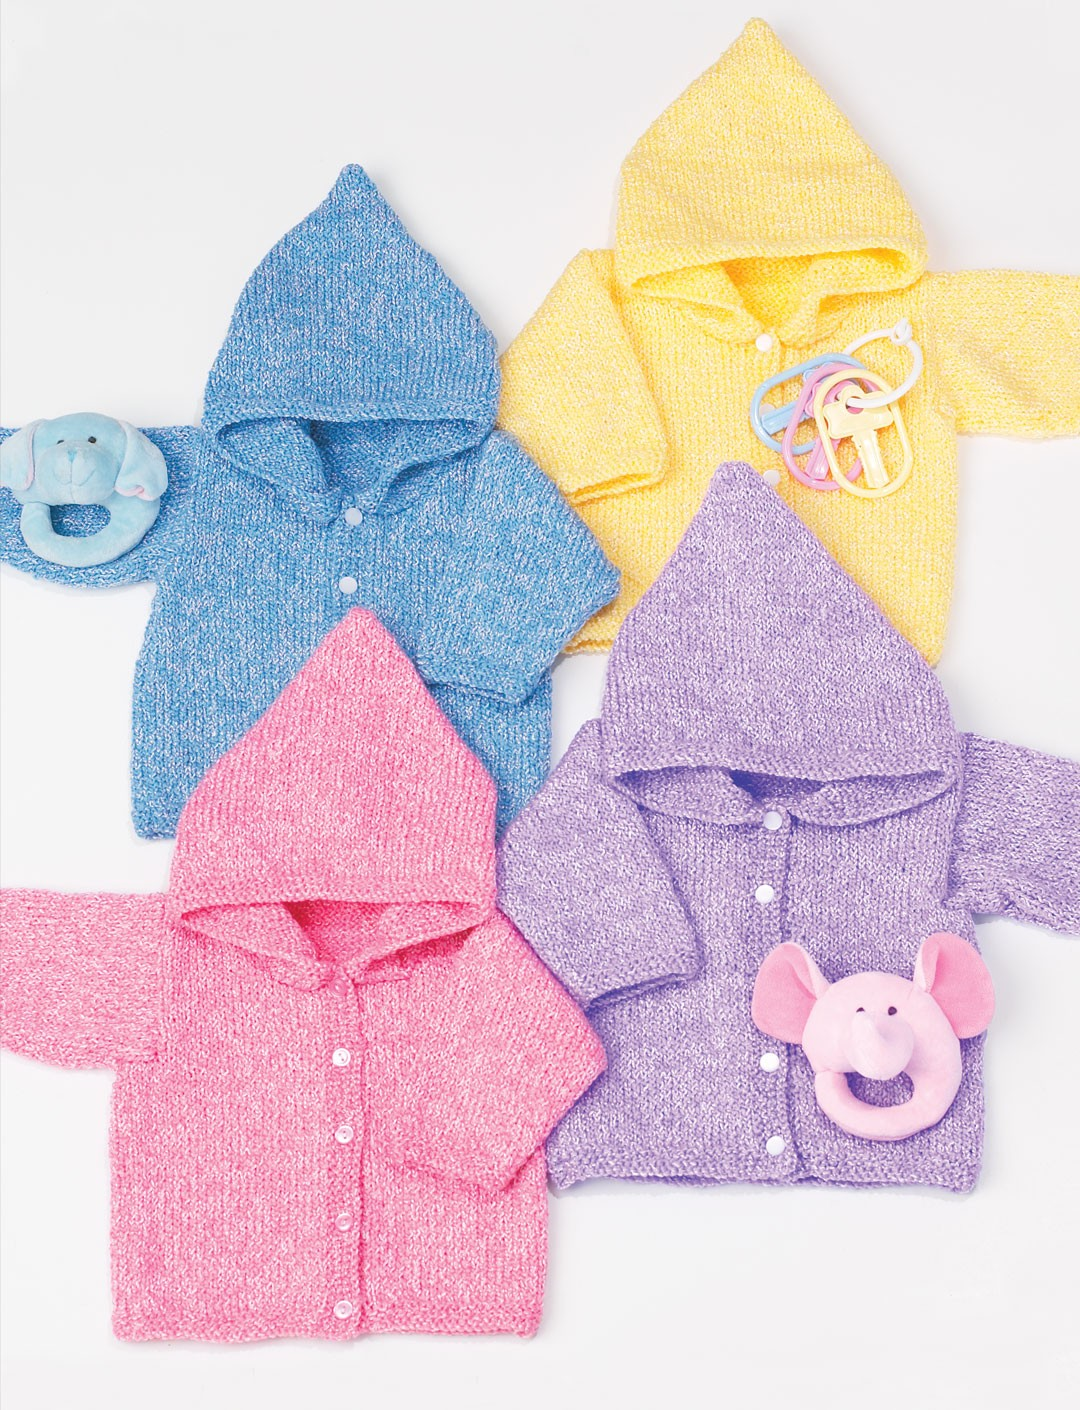 Baby Knitting Pattern Hoodie With Ears : Babys Hoodie - Patterns Yarnspirations